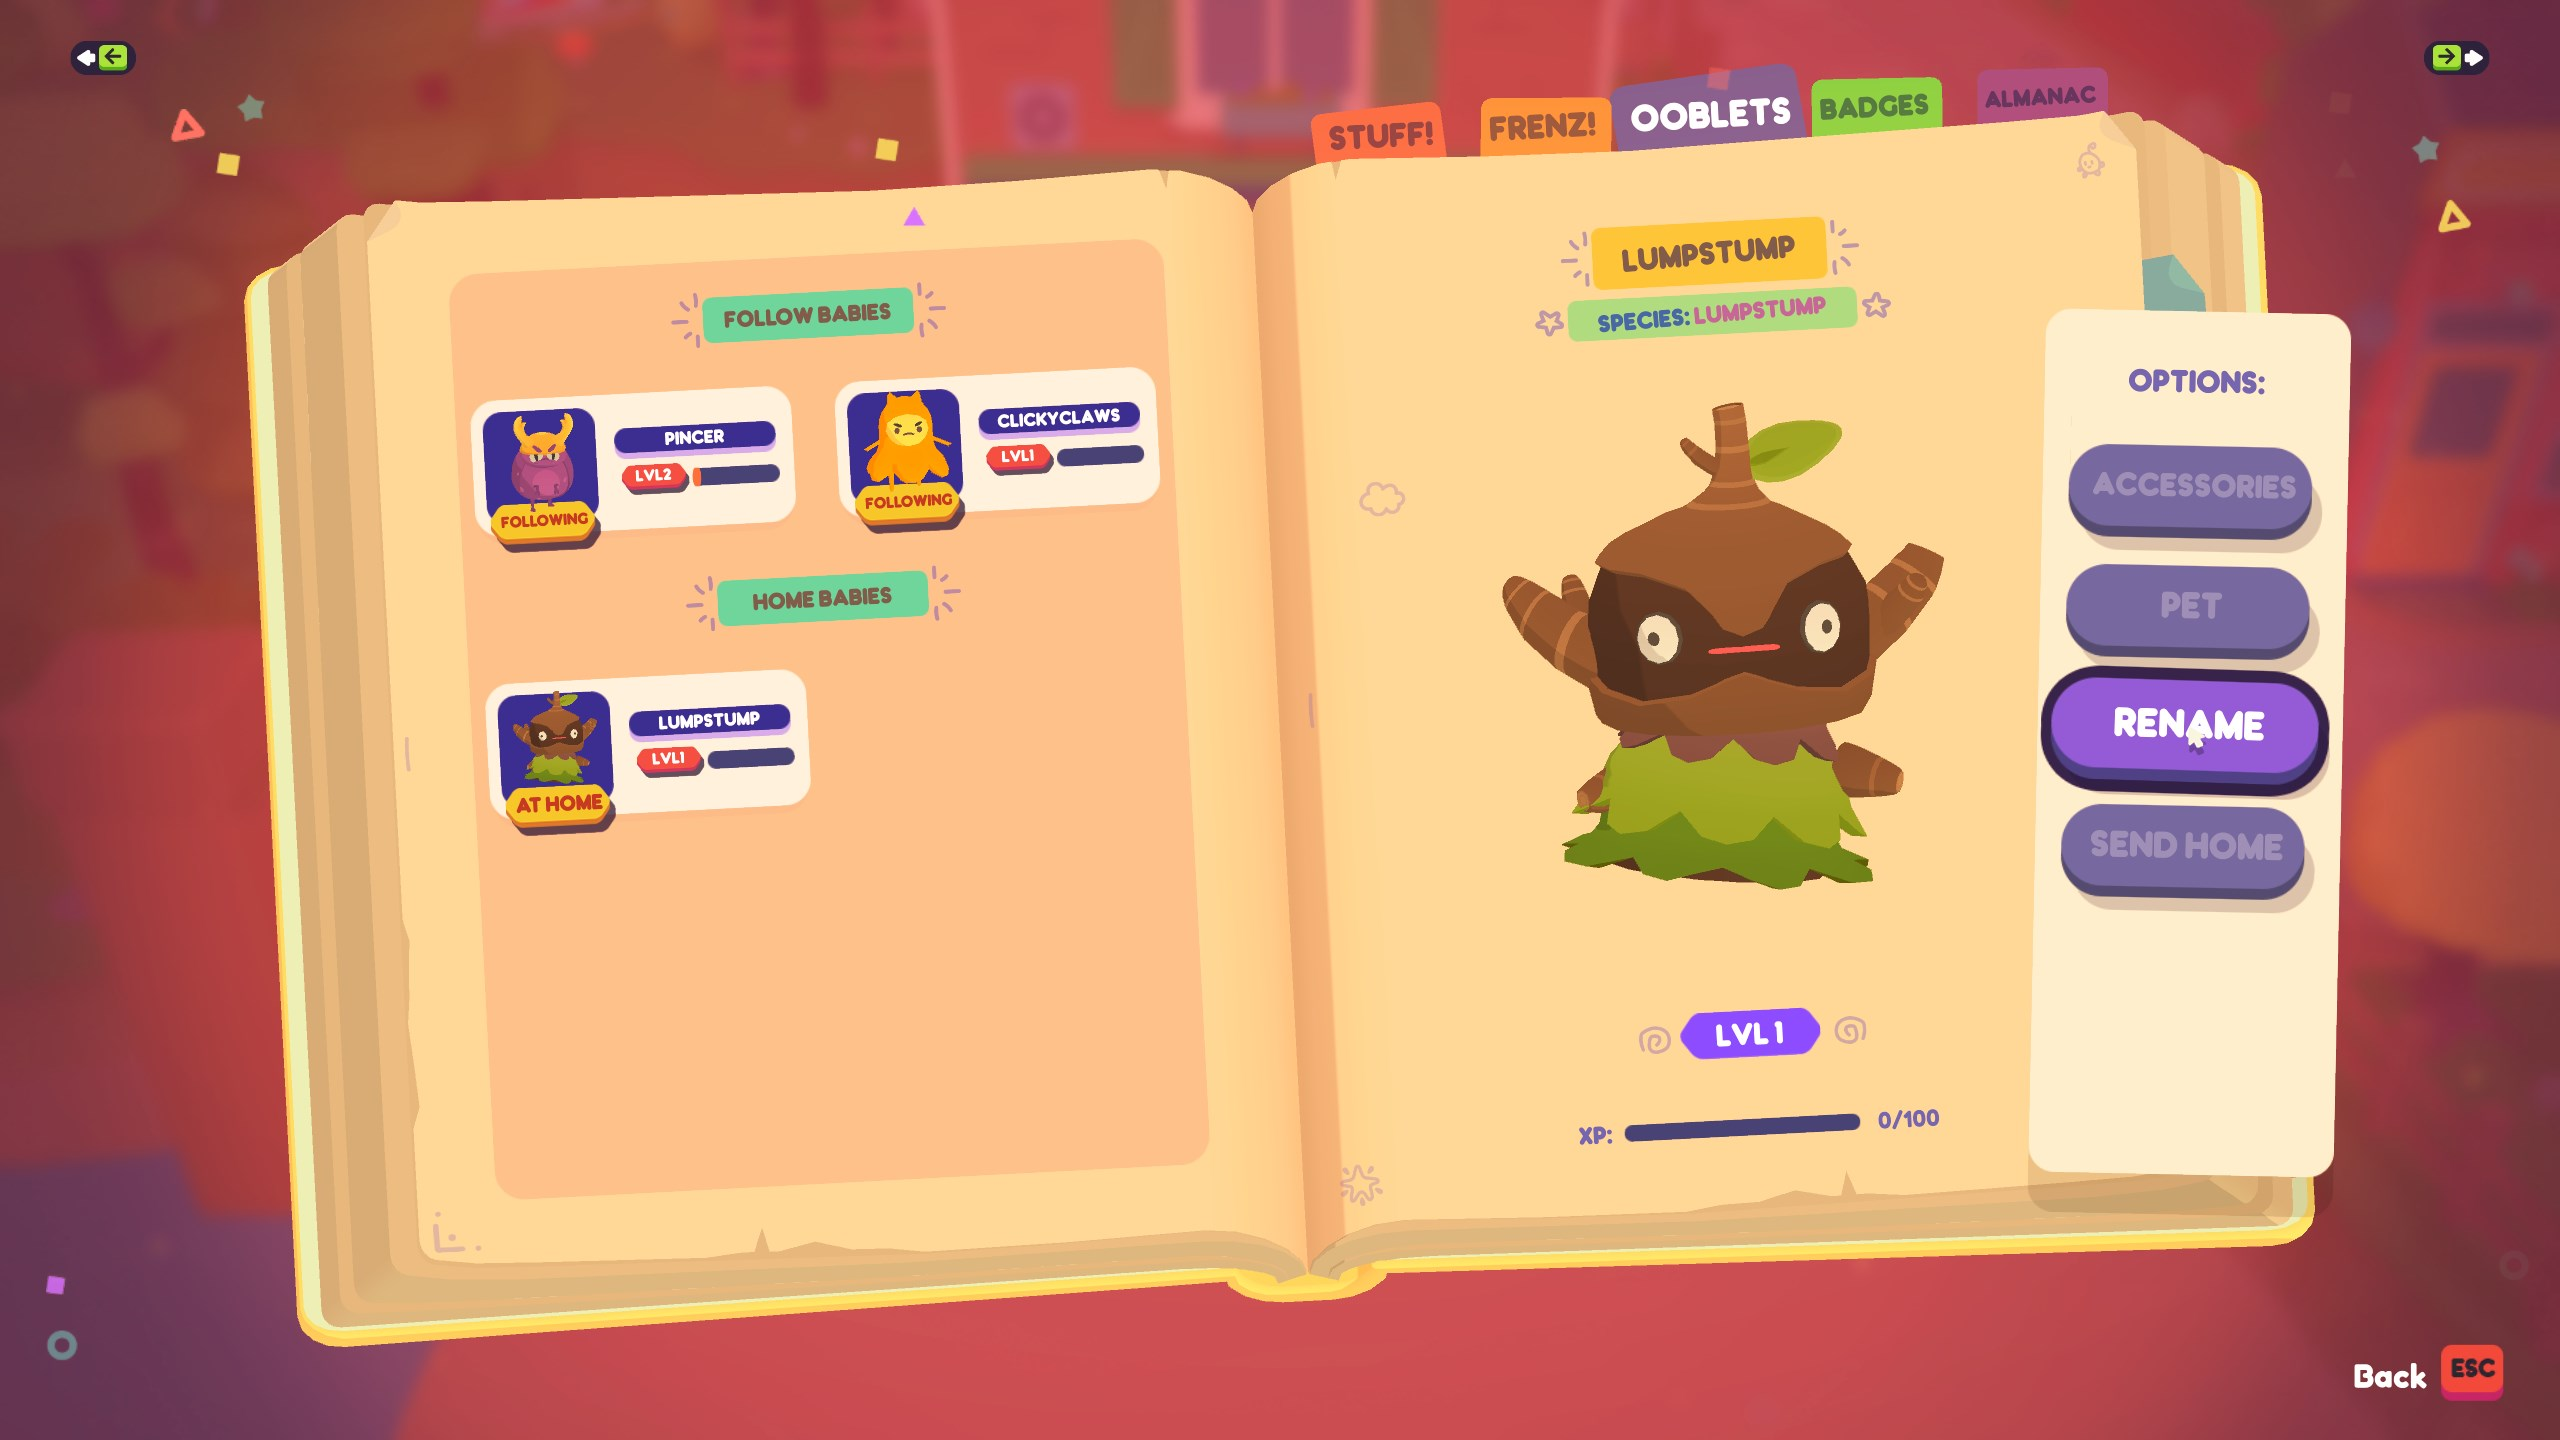 how to change your Ooblets' name